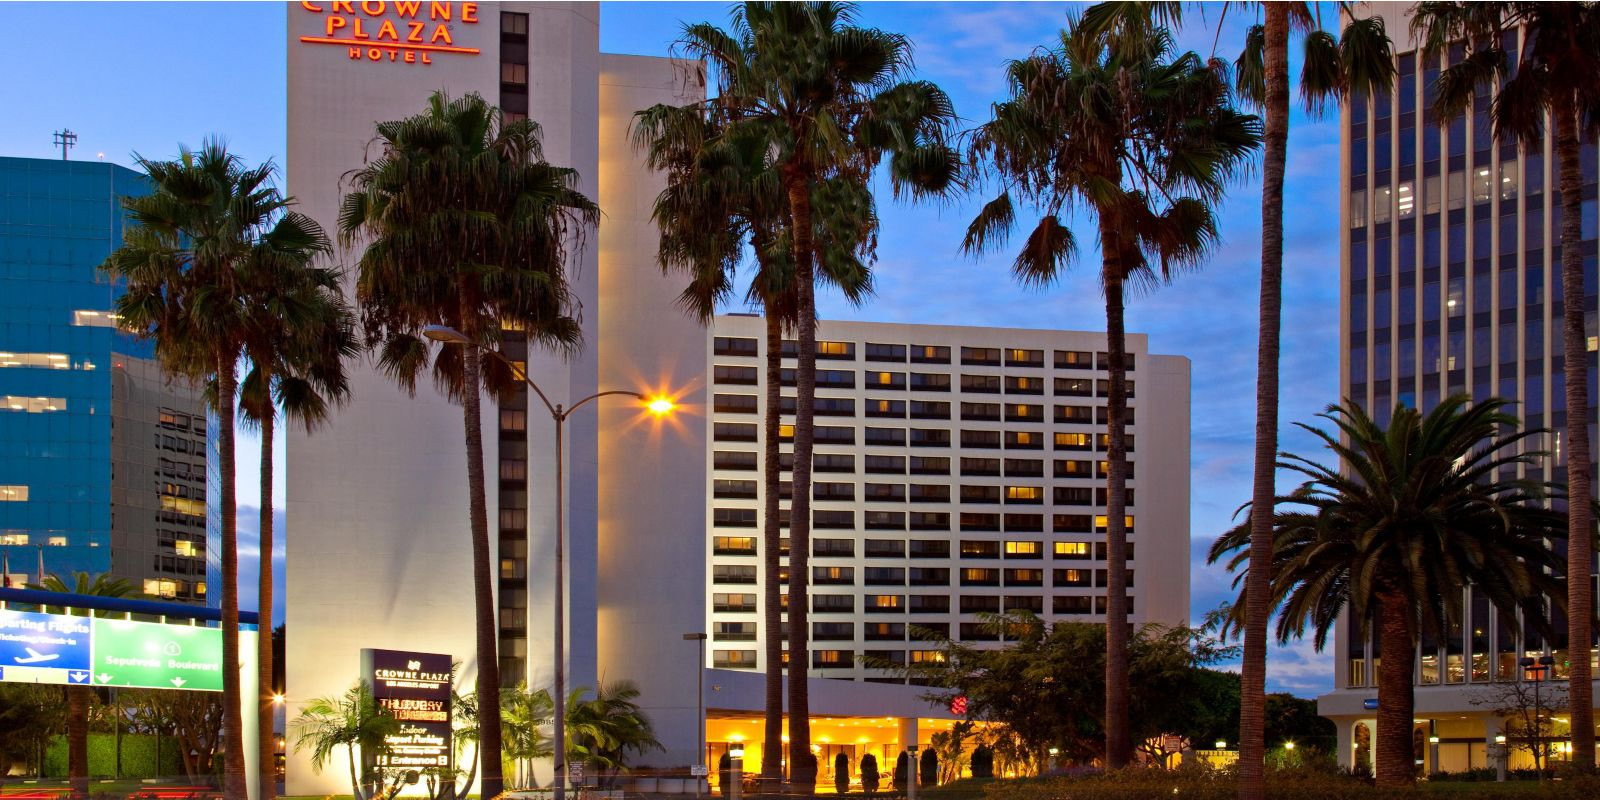 crowne-plaza-los-angeles-2531924221-2x1